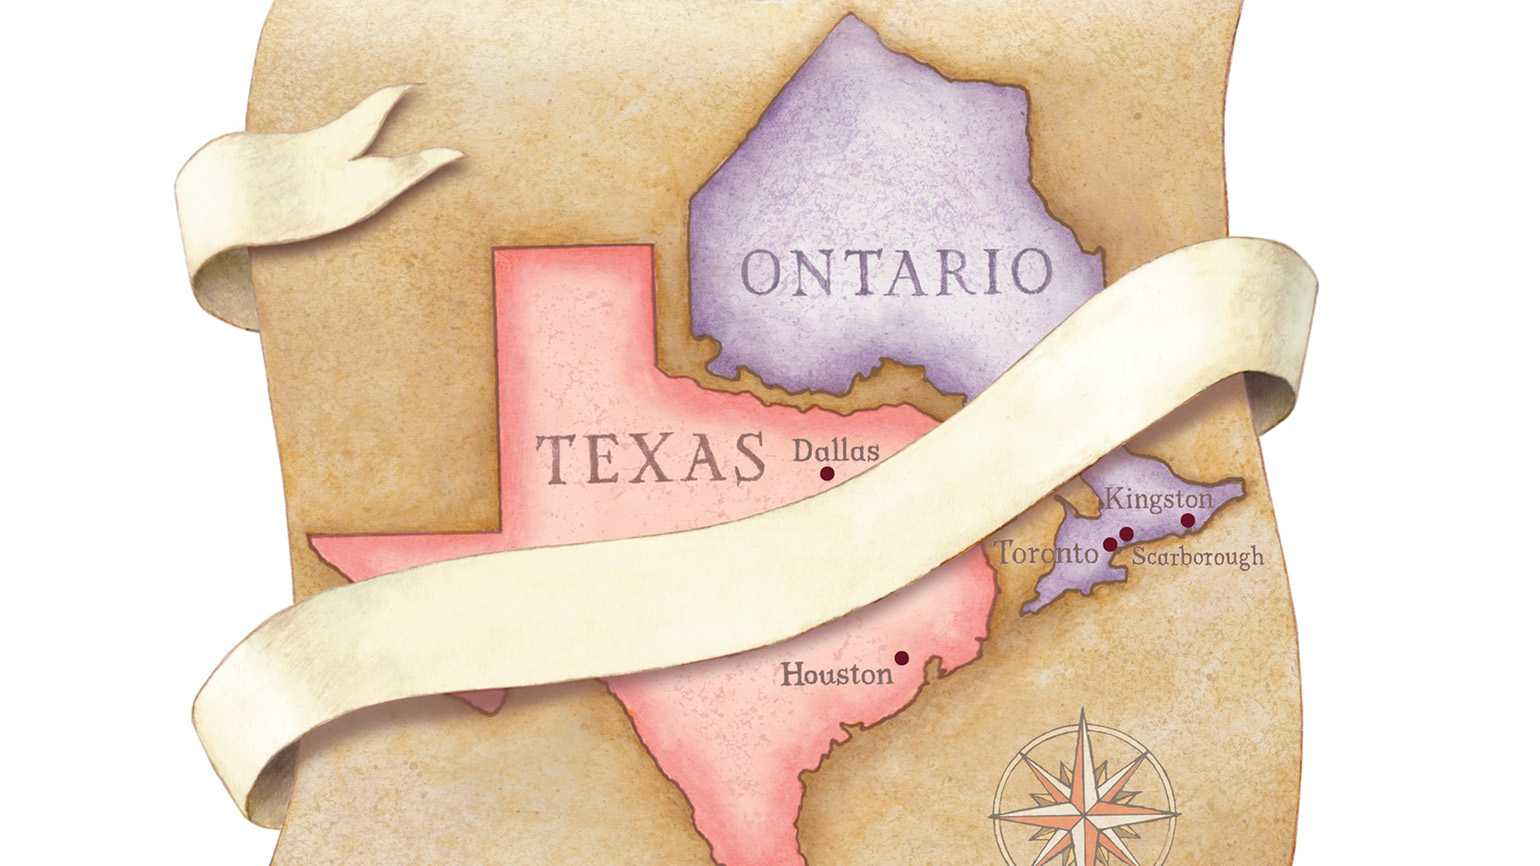 An illustration depicting Texas and Ontario on a map with a sash connecting them together.